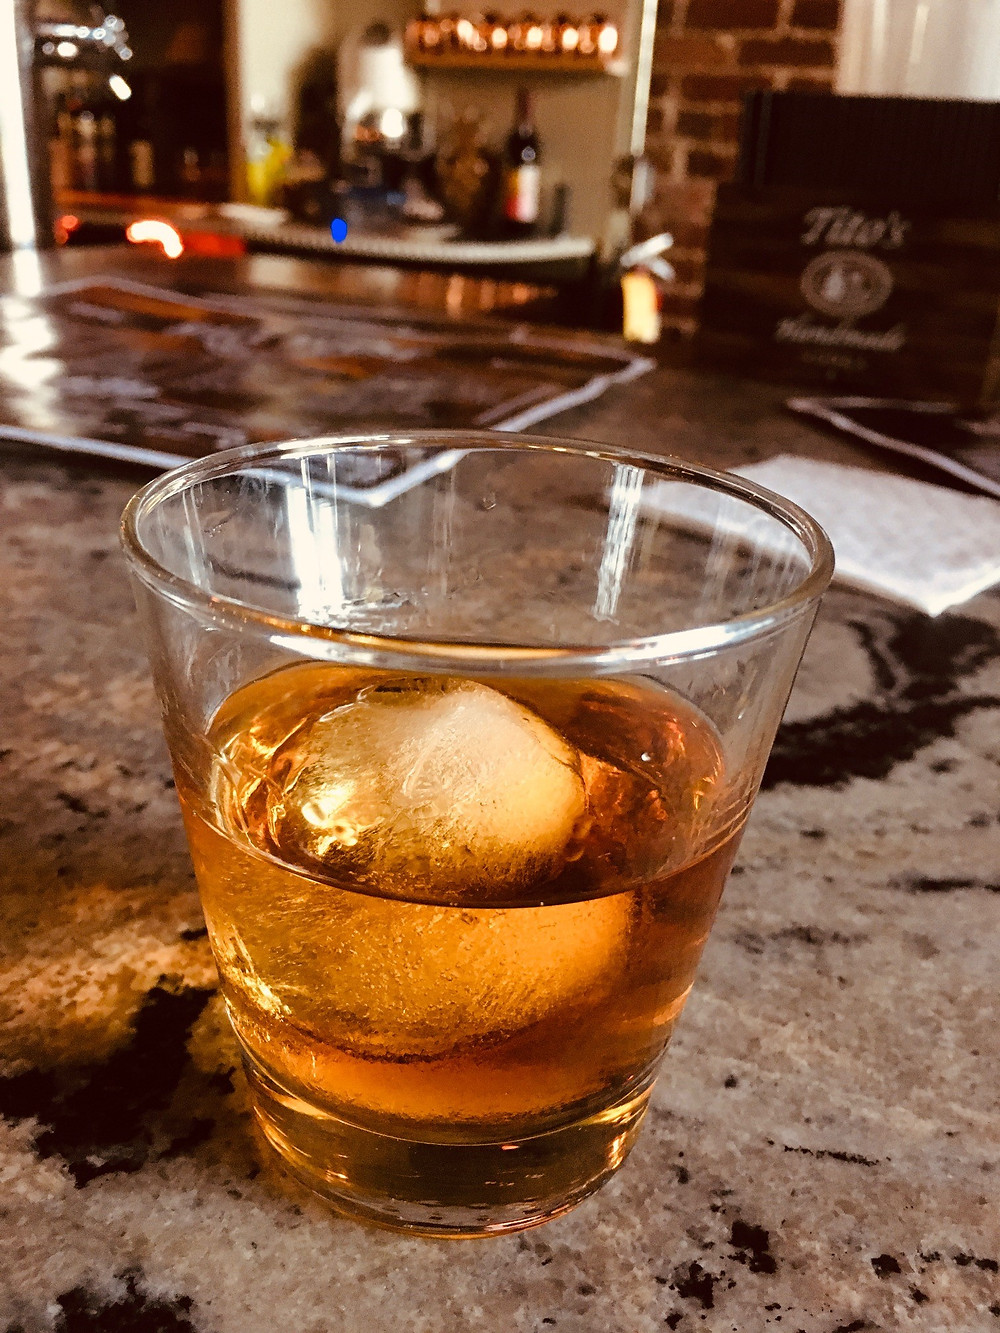 A shot of Weller Antique bourbon